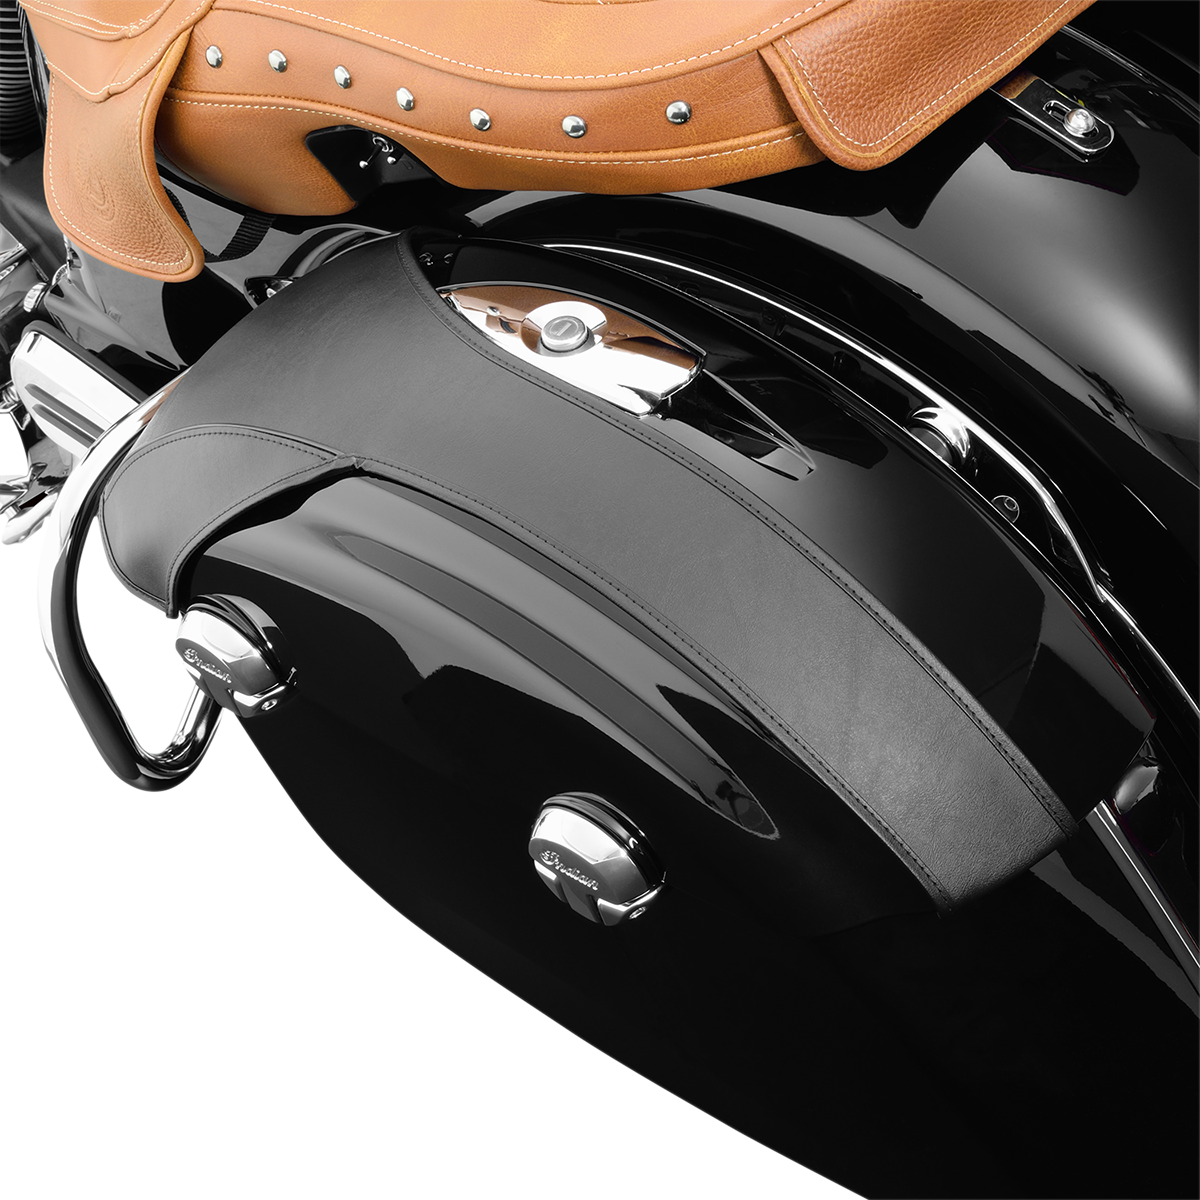 Hopnel Black Saddlebag Lid Bras for 14-17 Indian Chieftain Springfield Chief